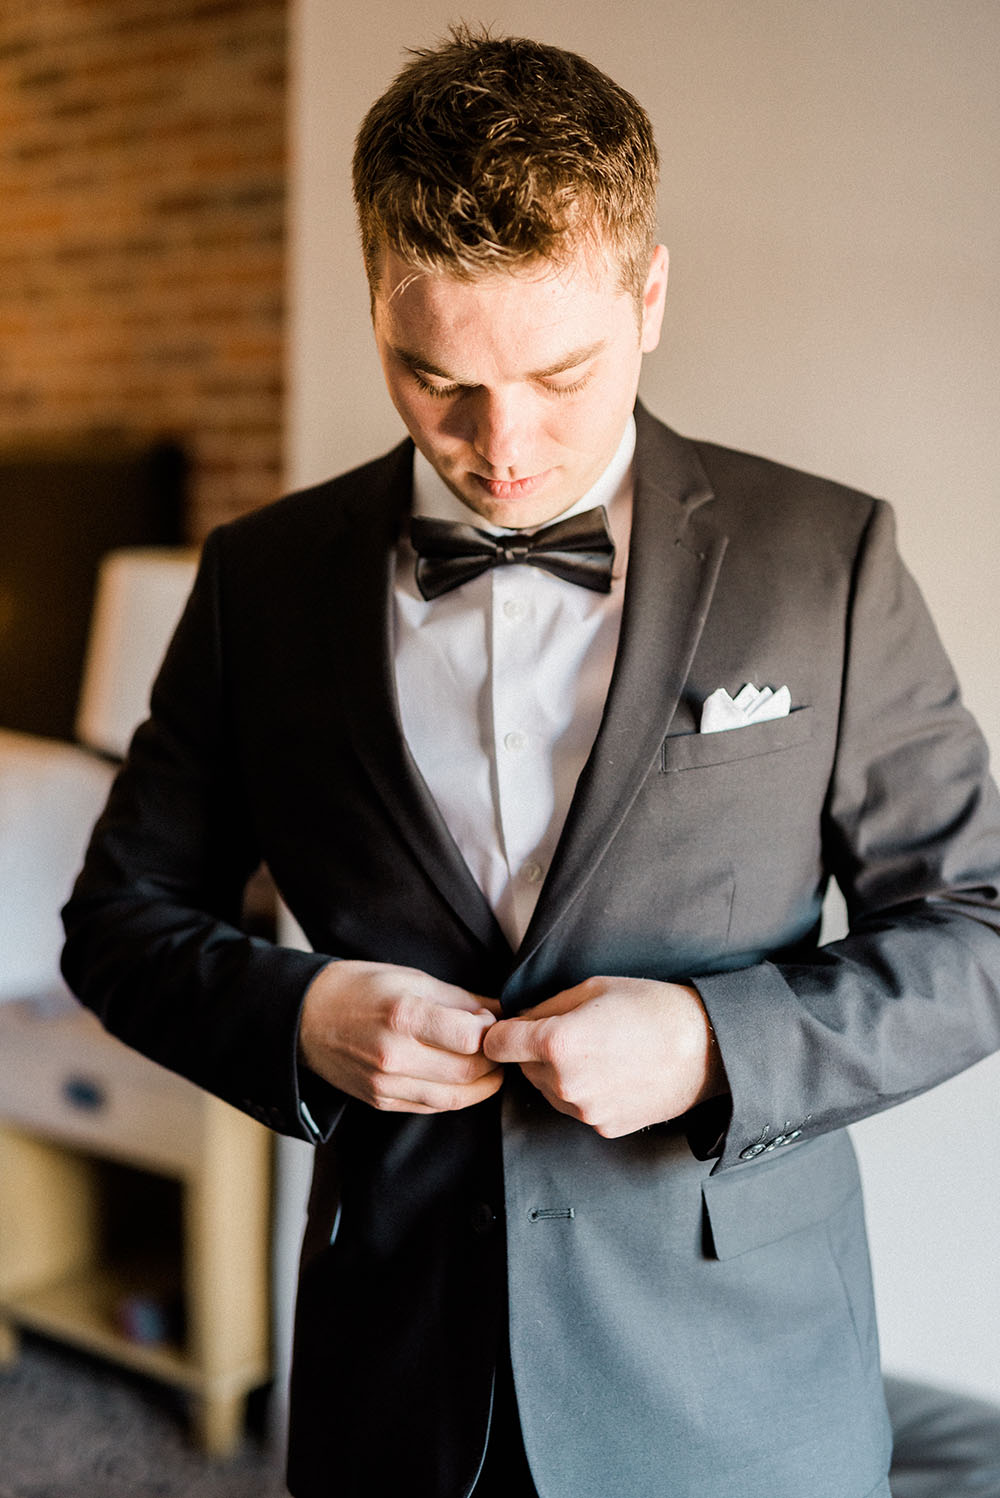 groom buttoning his jacket before wedding